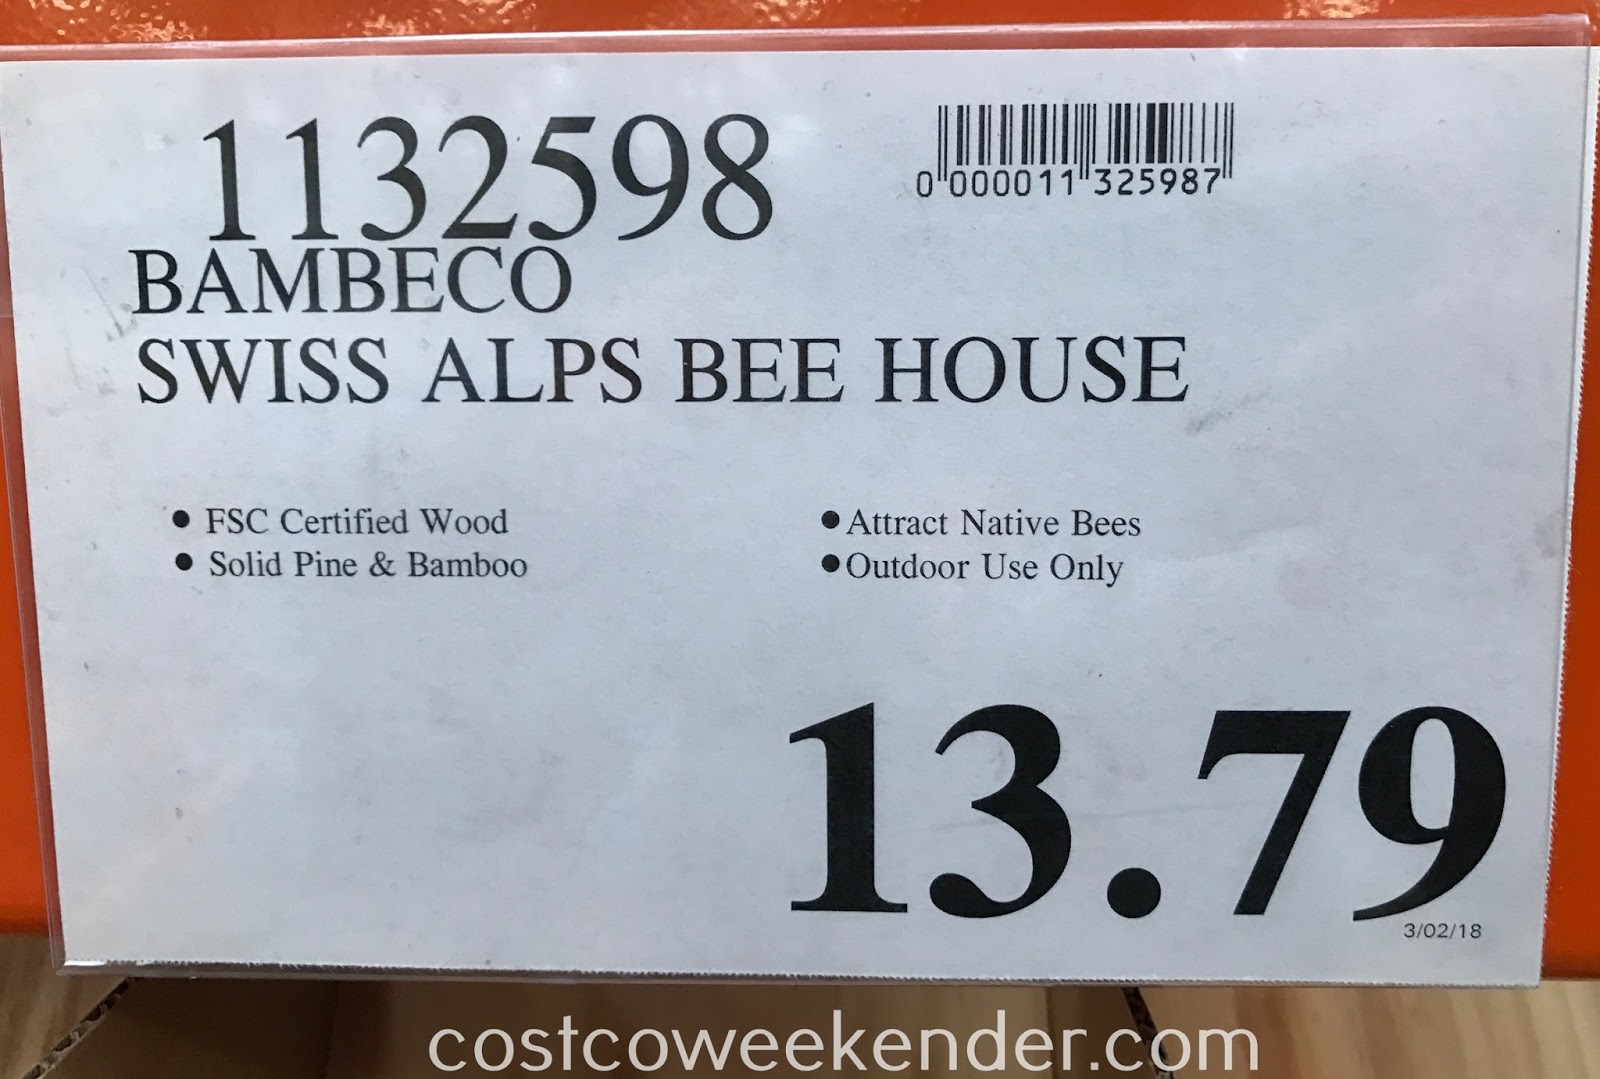 Deal for the Bambeco Swiss Alps Bee House at Costco